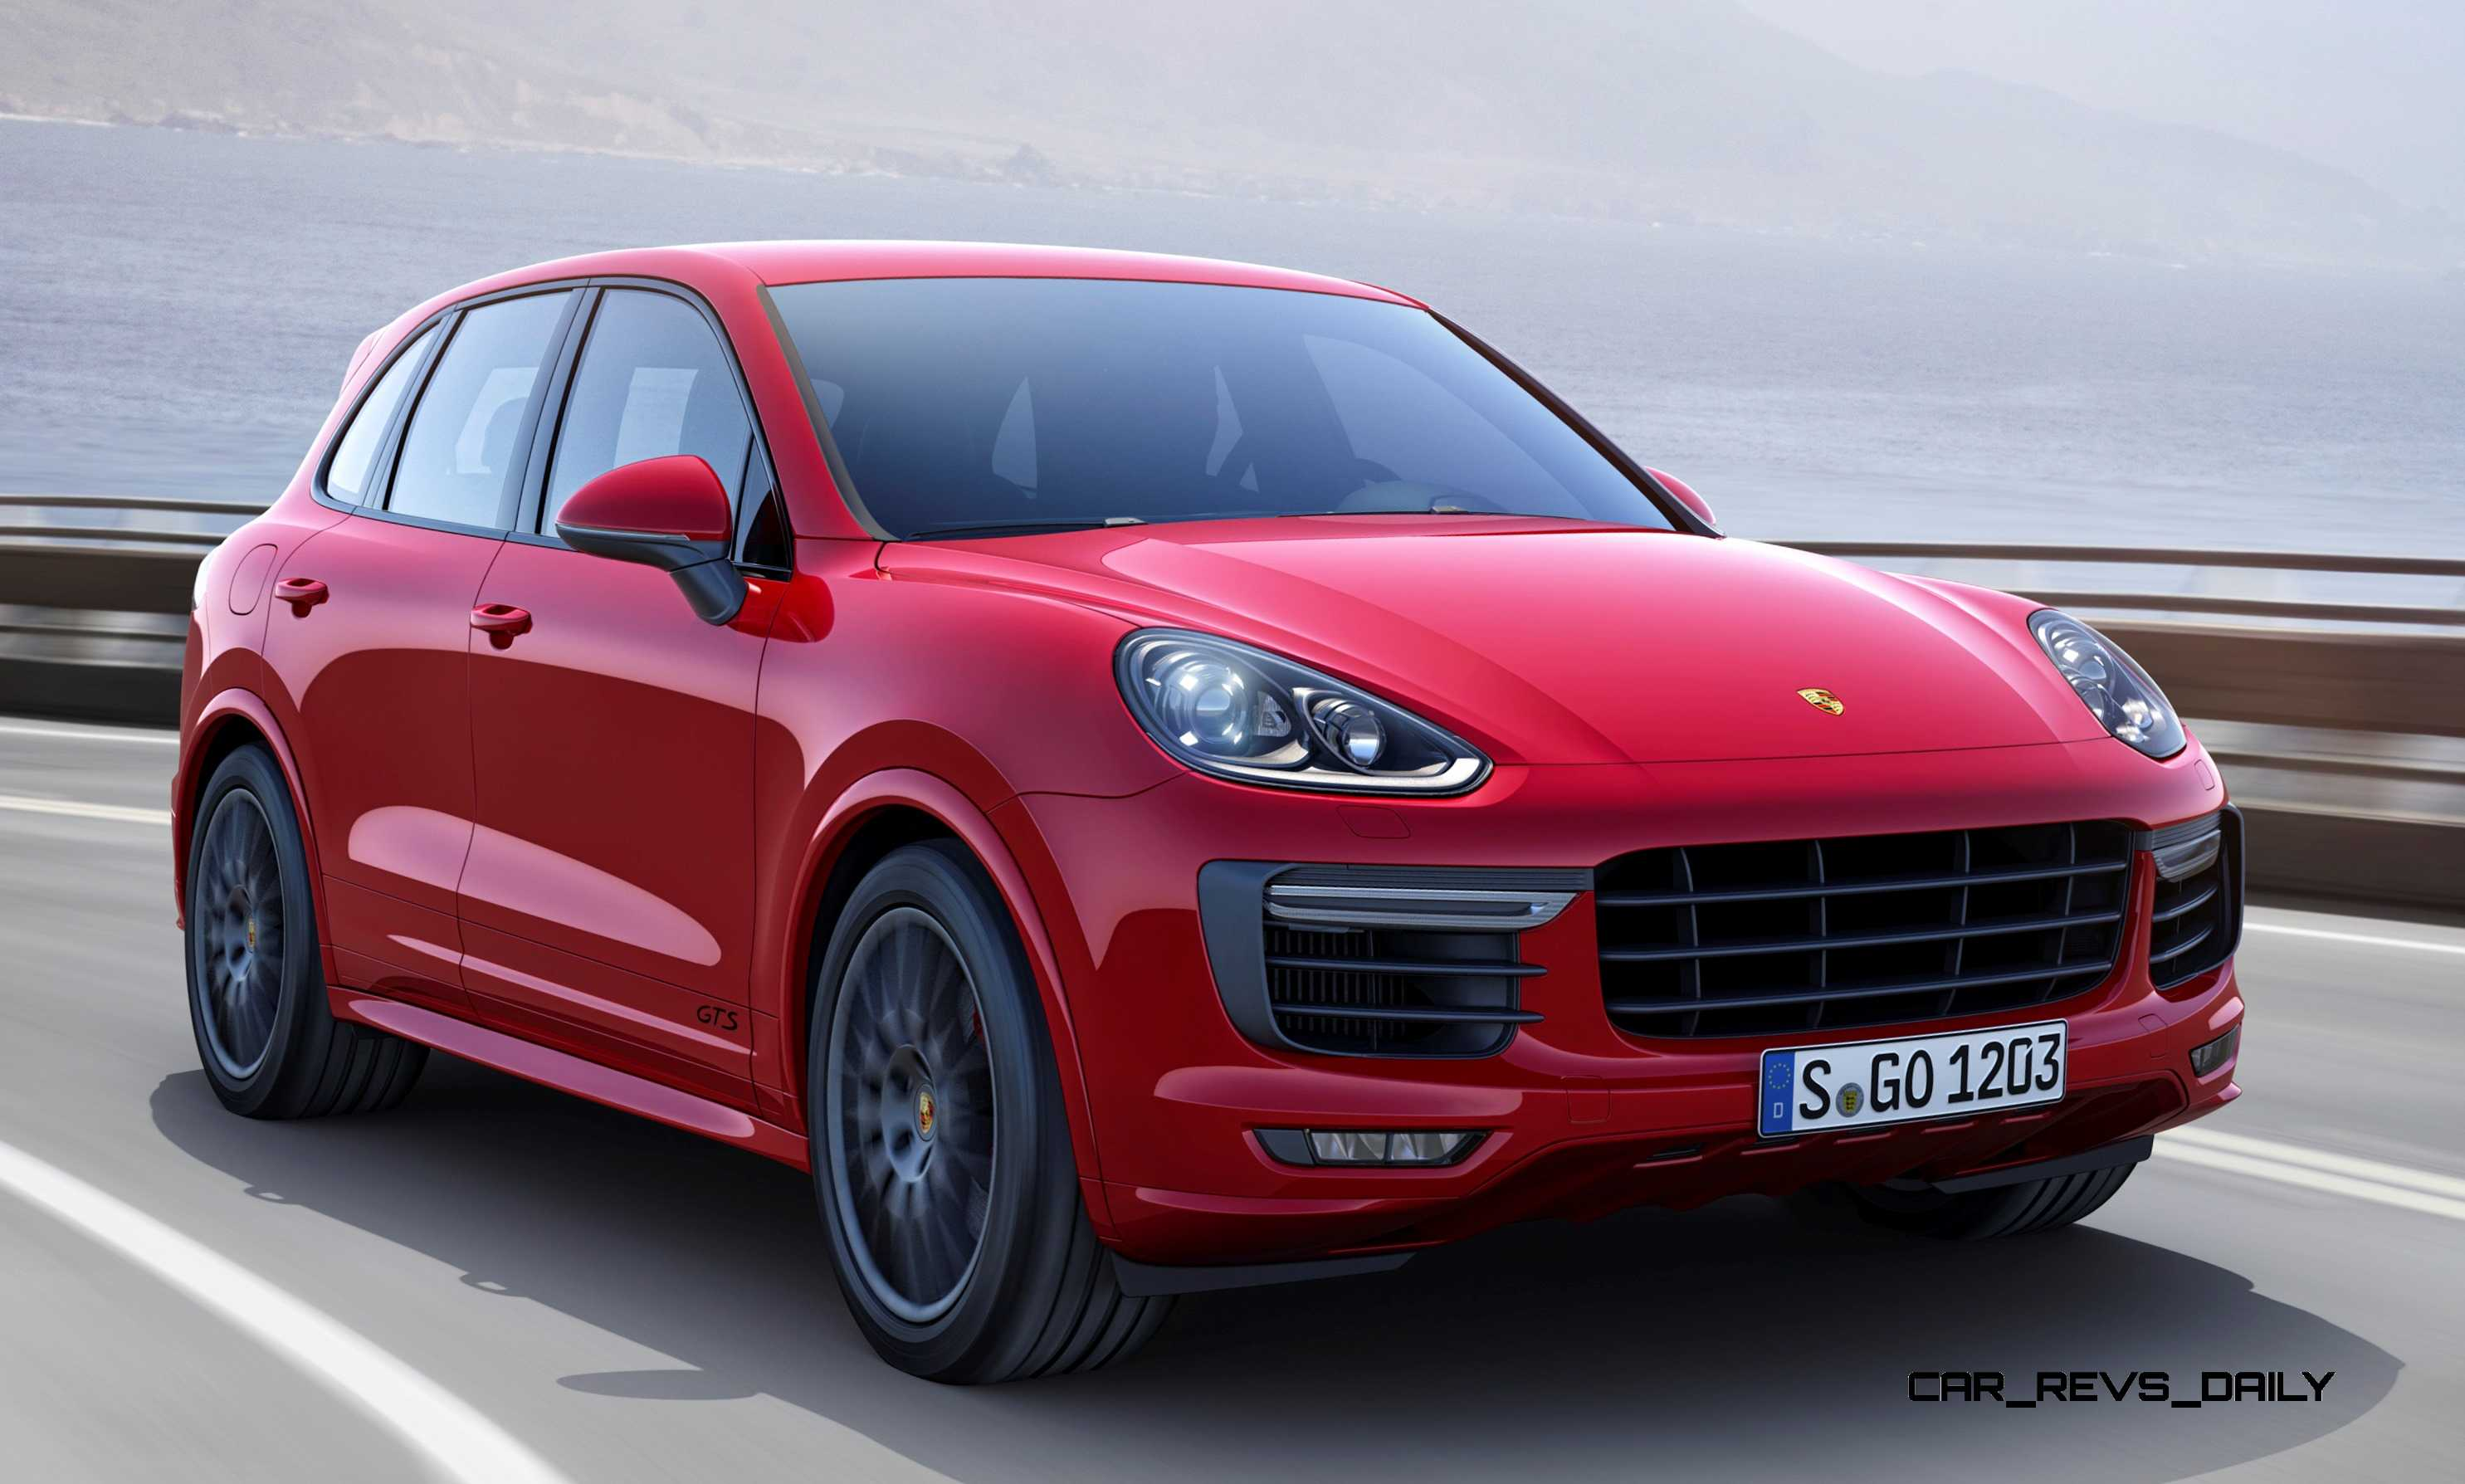 2015 porsche cayenne gts first look february 2015 usa arrival. Black Bedroom Furniture Sets. Home Design Ideas